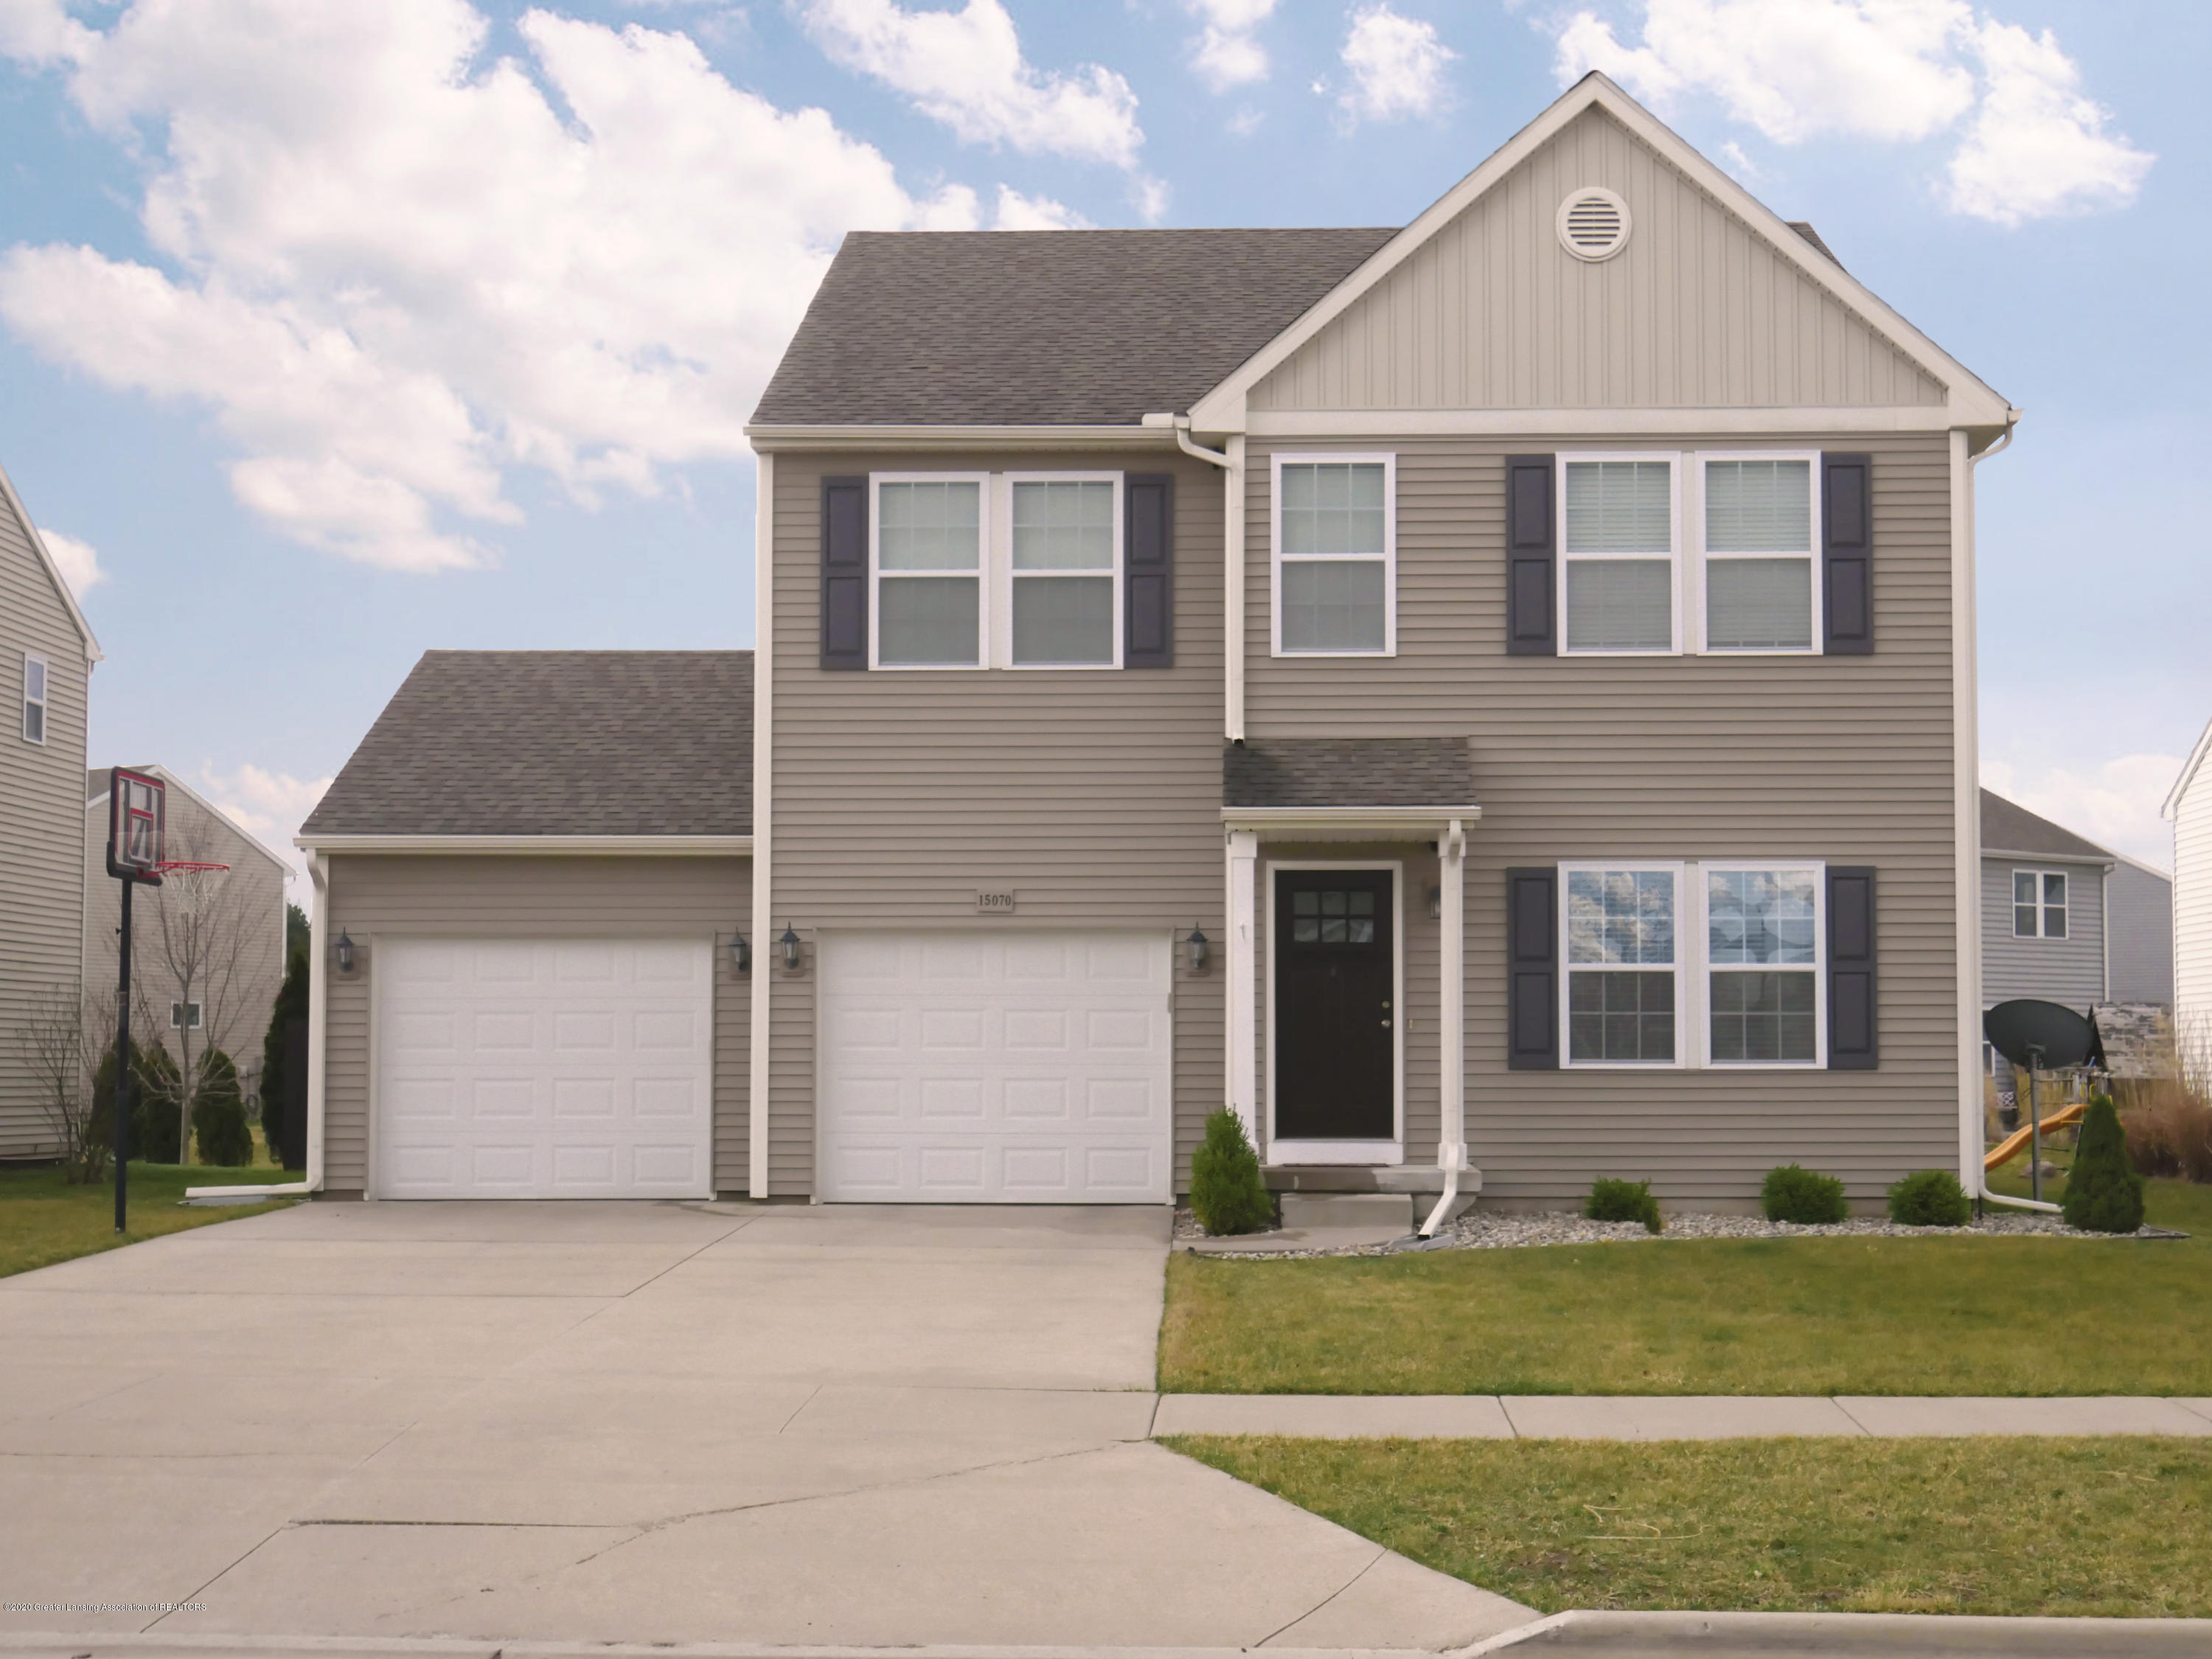 15070 Loxley Ln - 01-front01 - 1